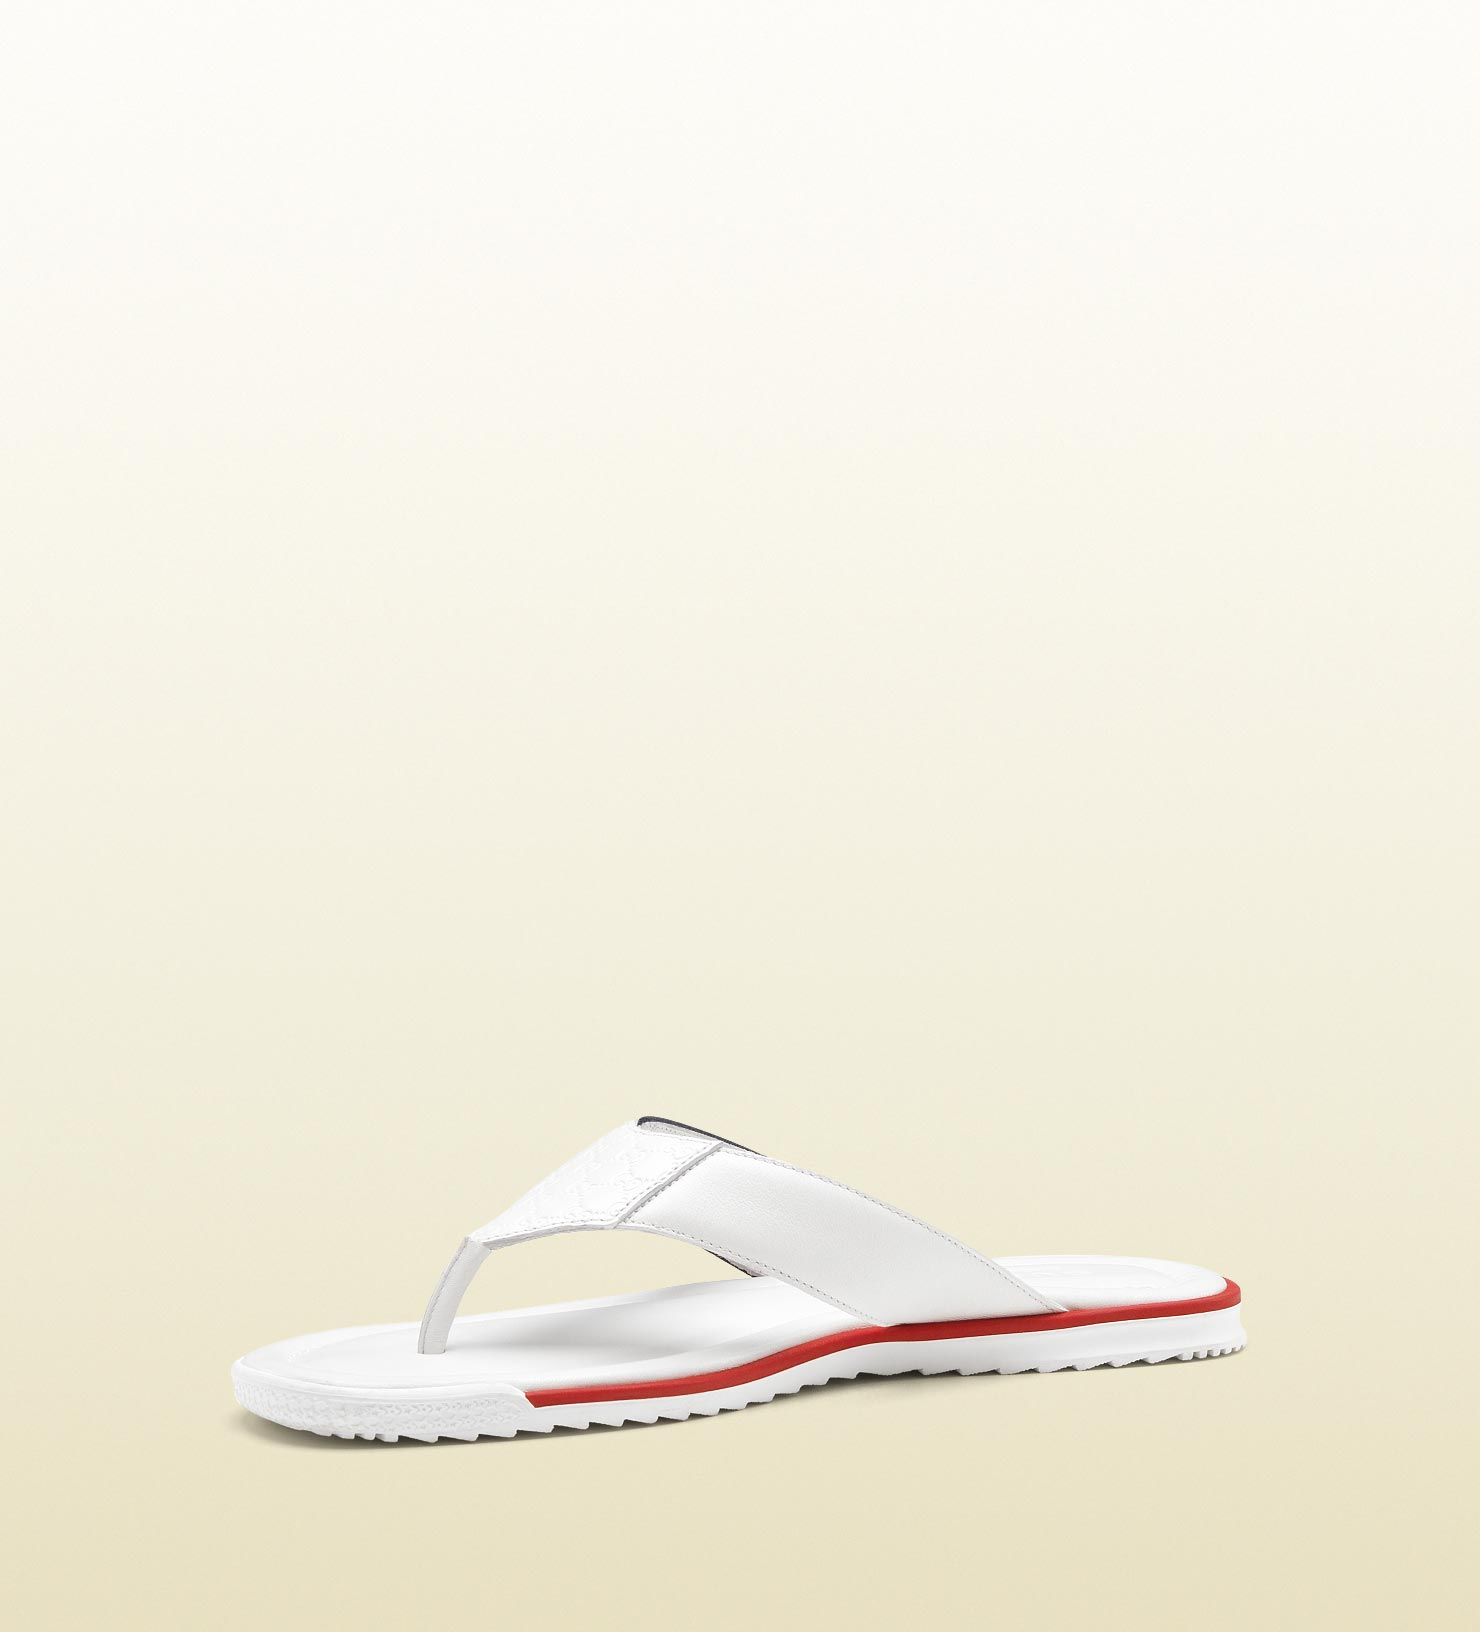 293012b5757c19 Lyst - Gucci White Leather Thong Sandal in White for Men